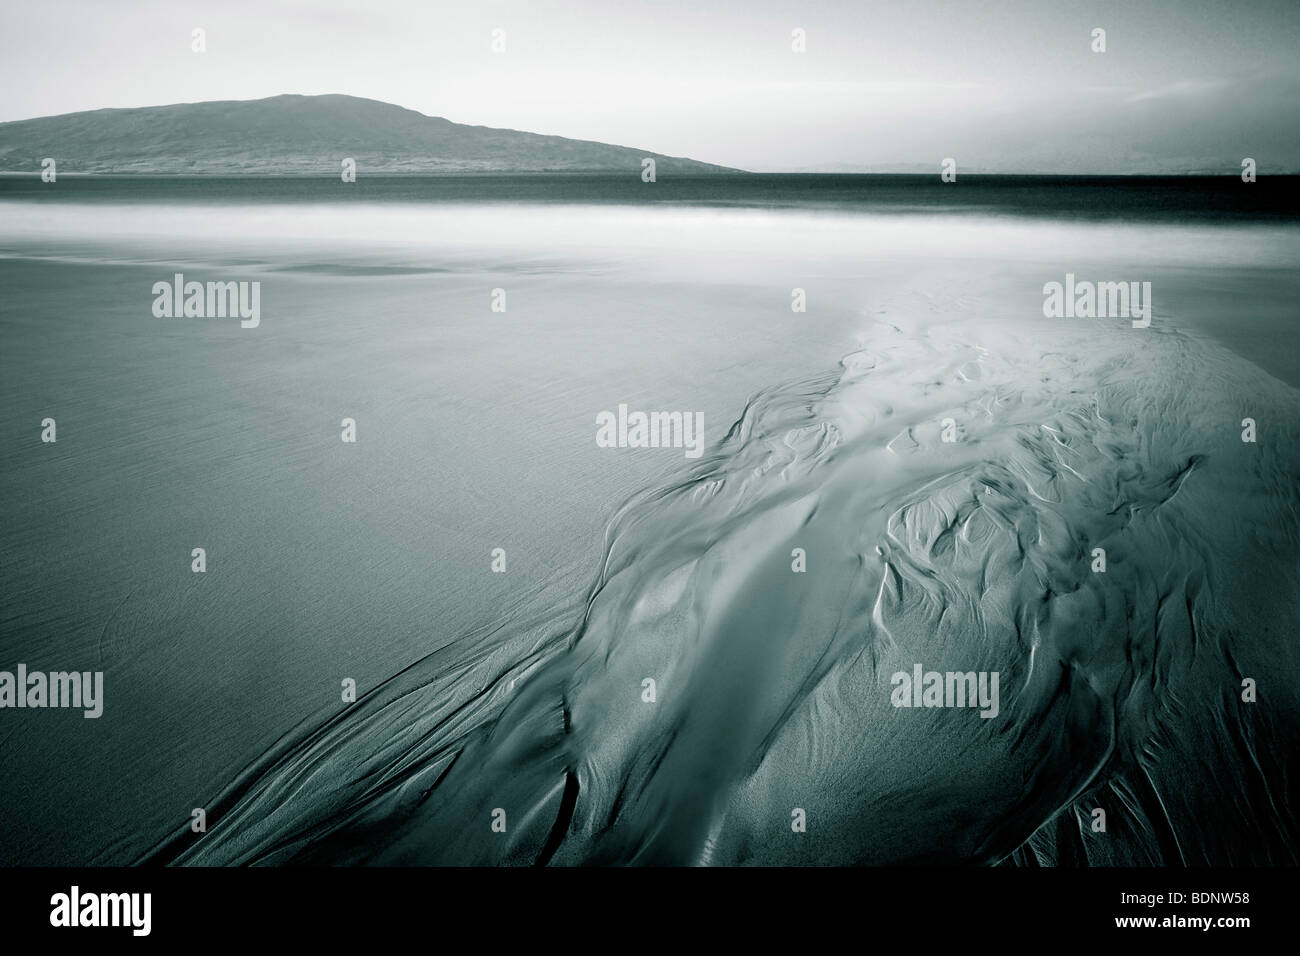 The flow of water in sand - Stock Image